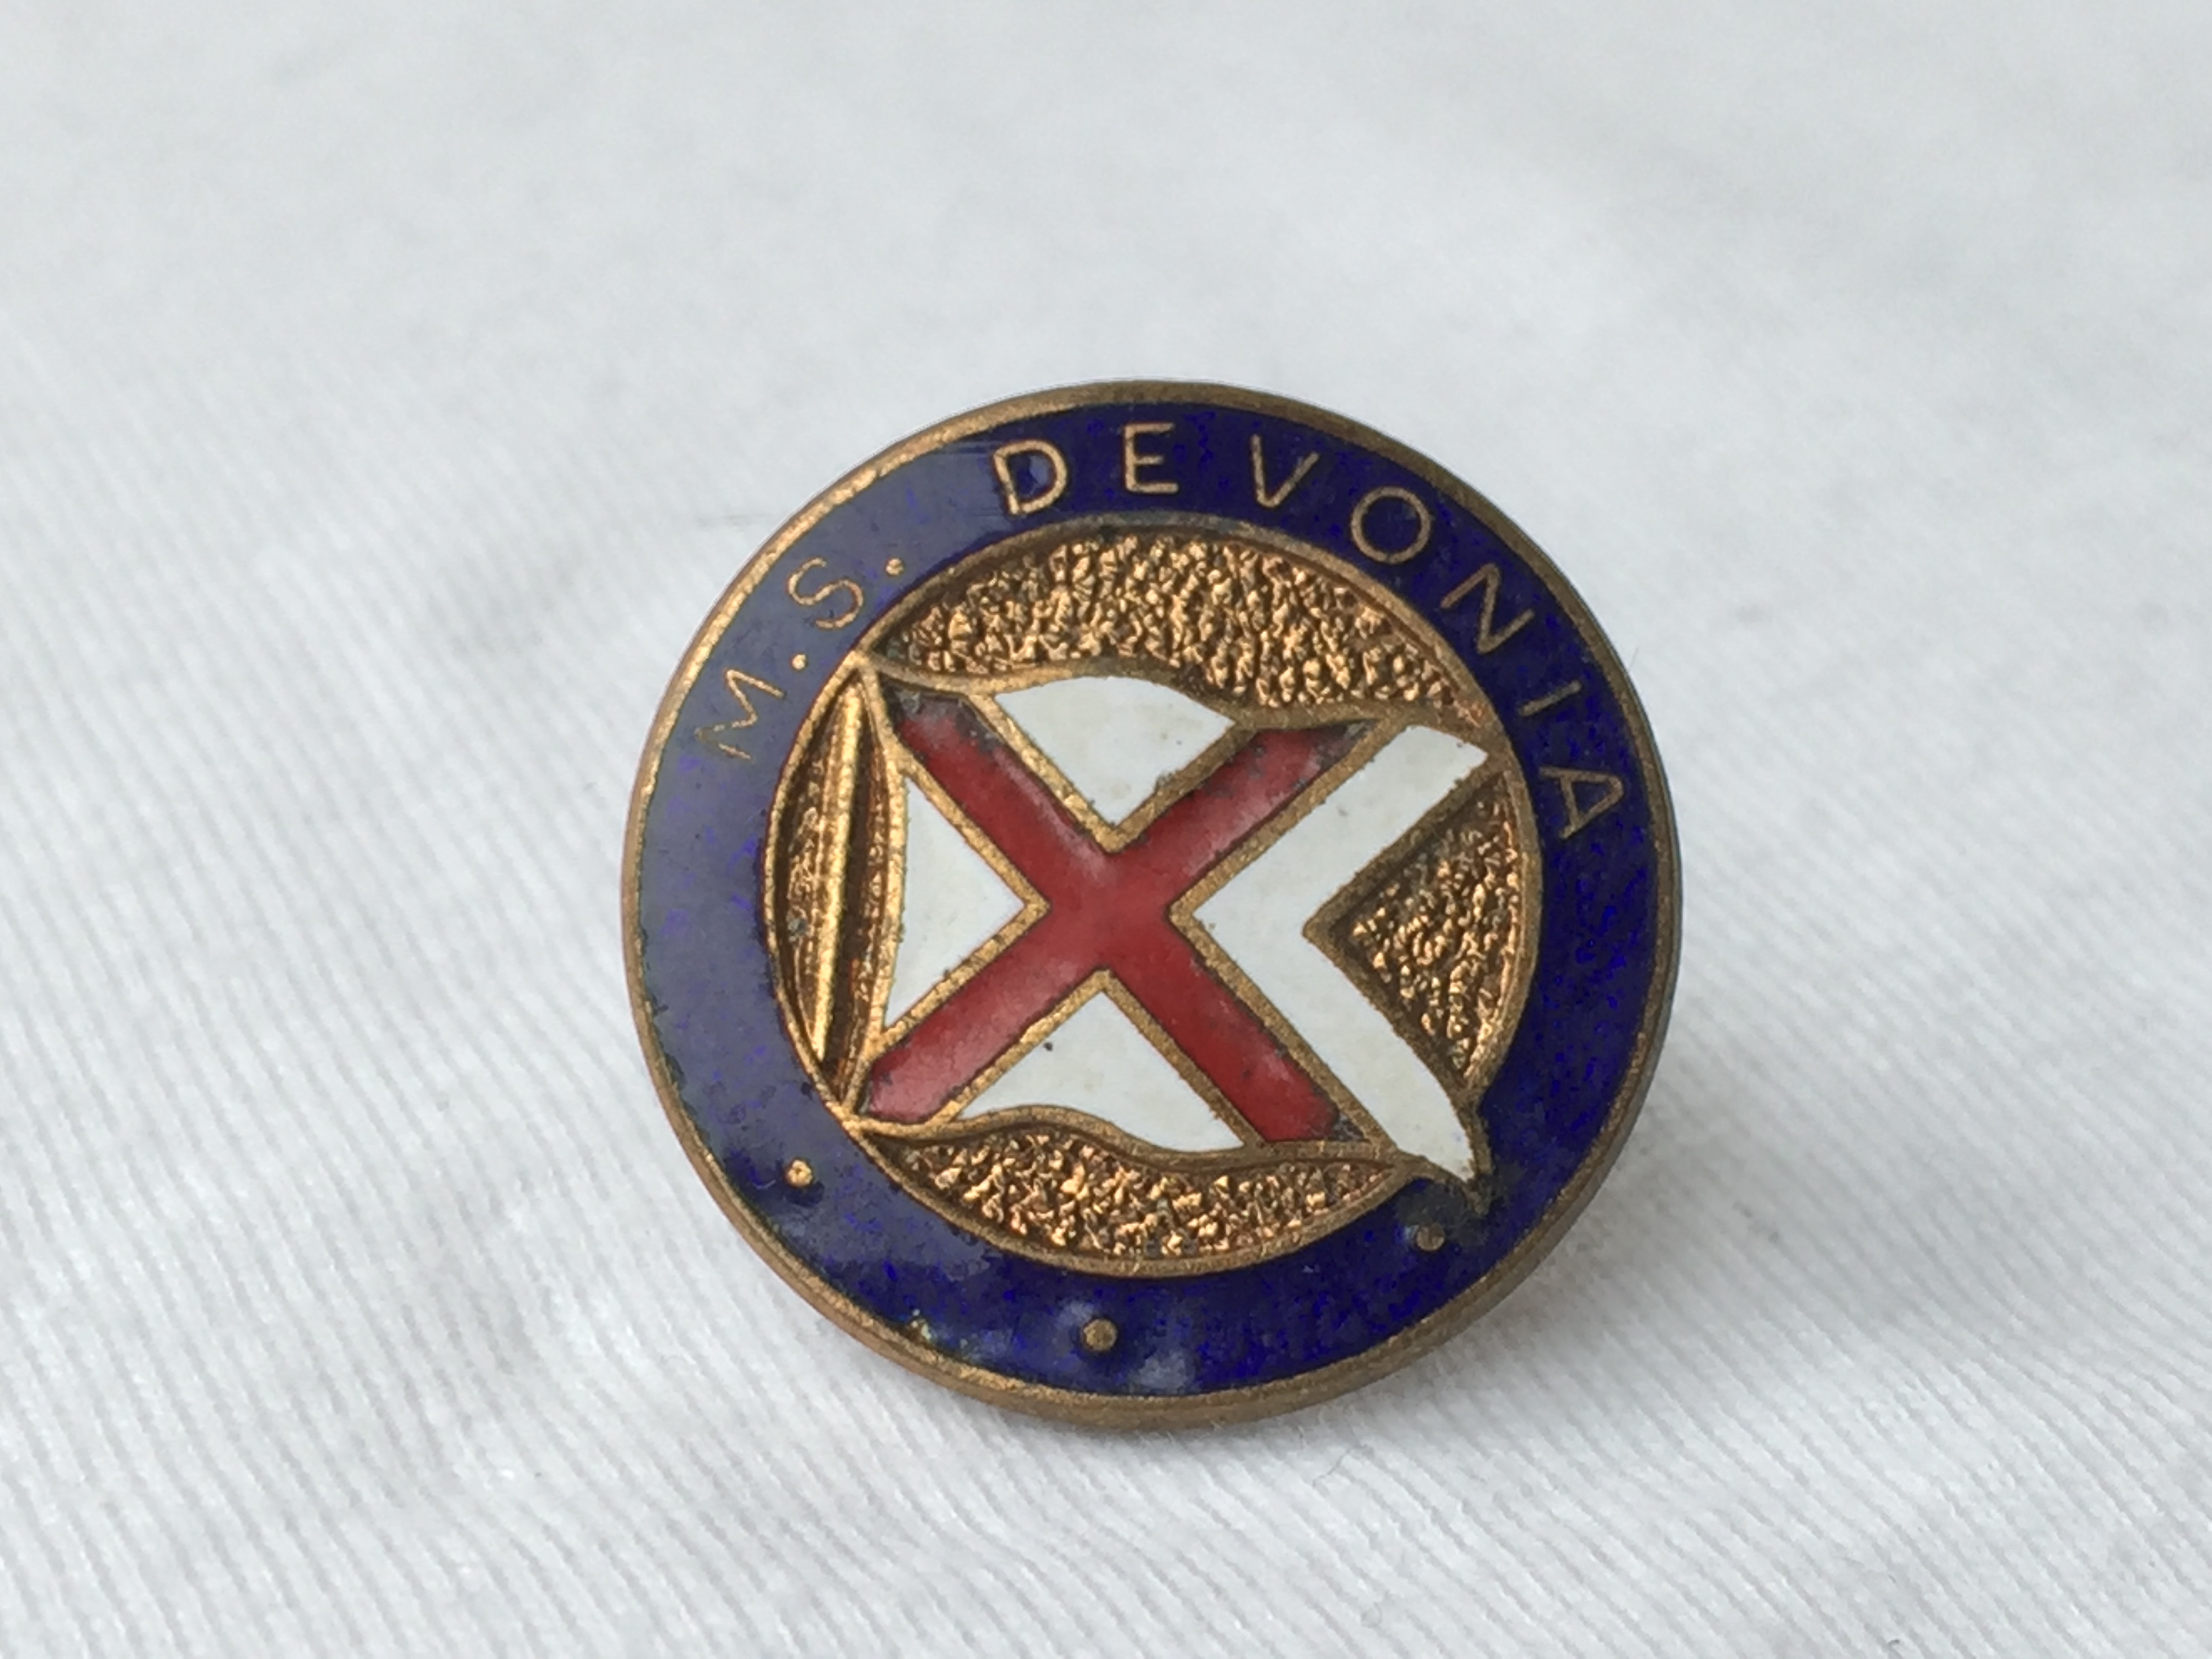 LAPEL PIN BADGE FROM THE BRITISH INDIA STEAM NAVIGATION COMPANY LINE VESSEL THE MS DEVONIA 1938-1967